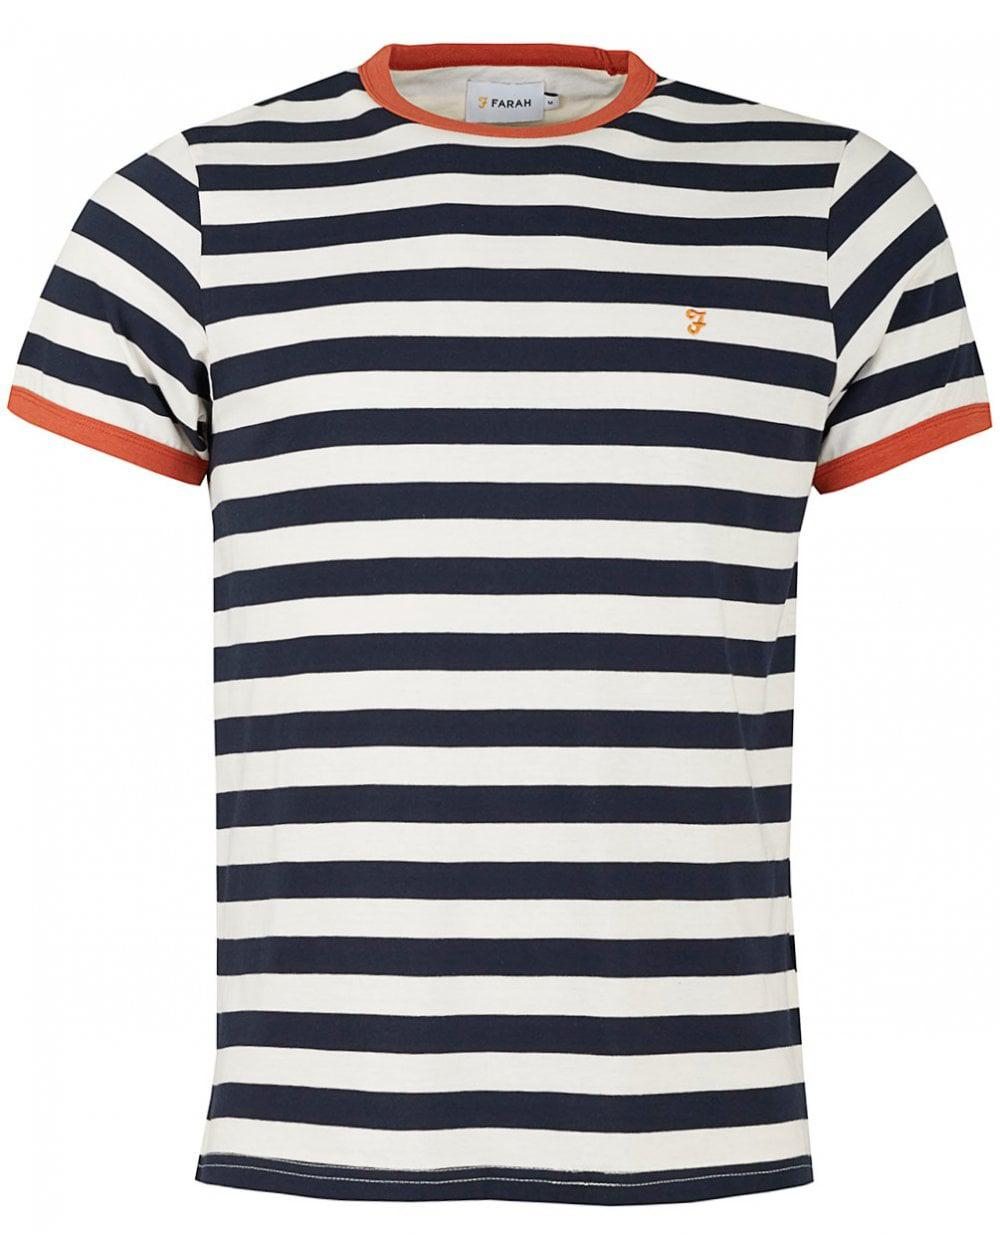 46568d551e36 Farah Stripy Tshirt Navy Beige in Blue for Men - Save 51% - Lyst